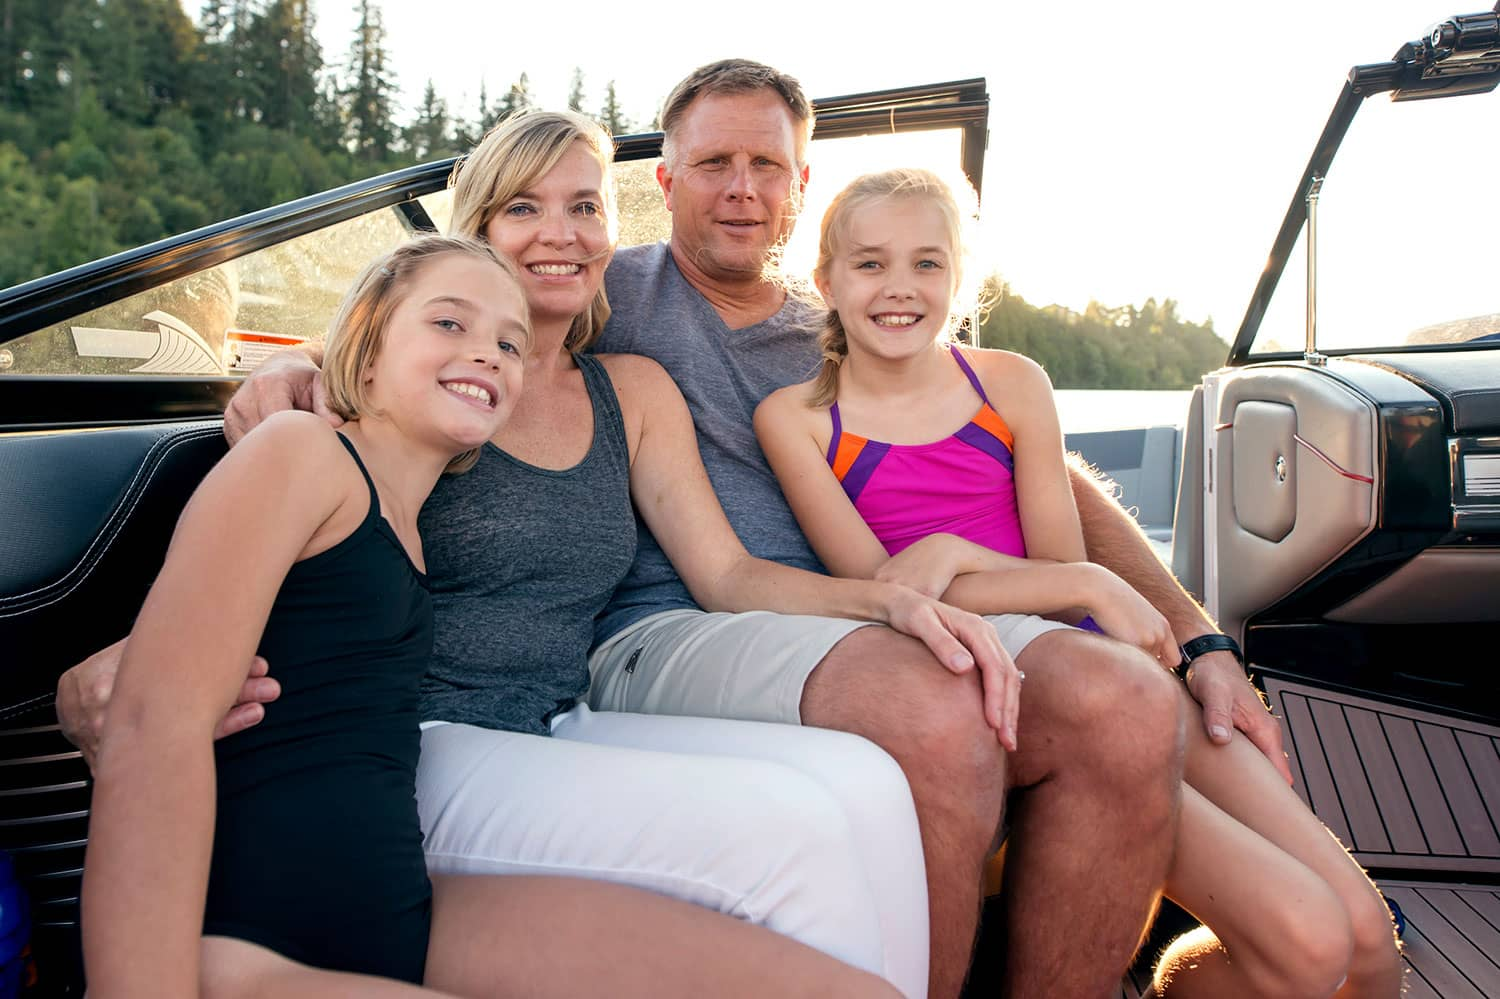 Family of 4 on Boat